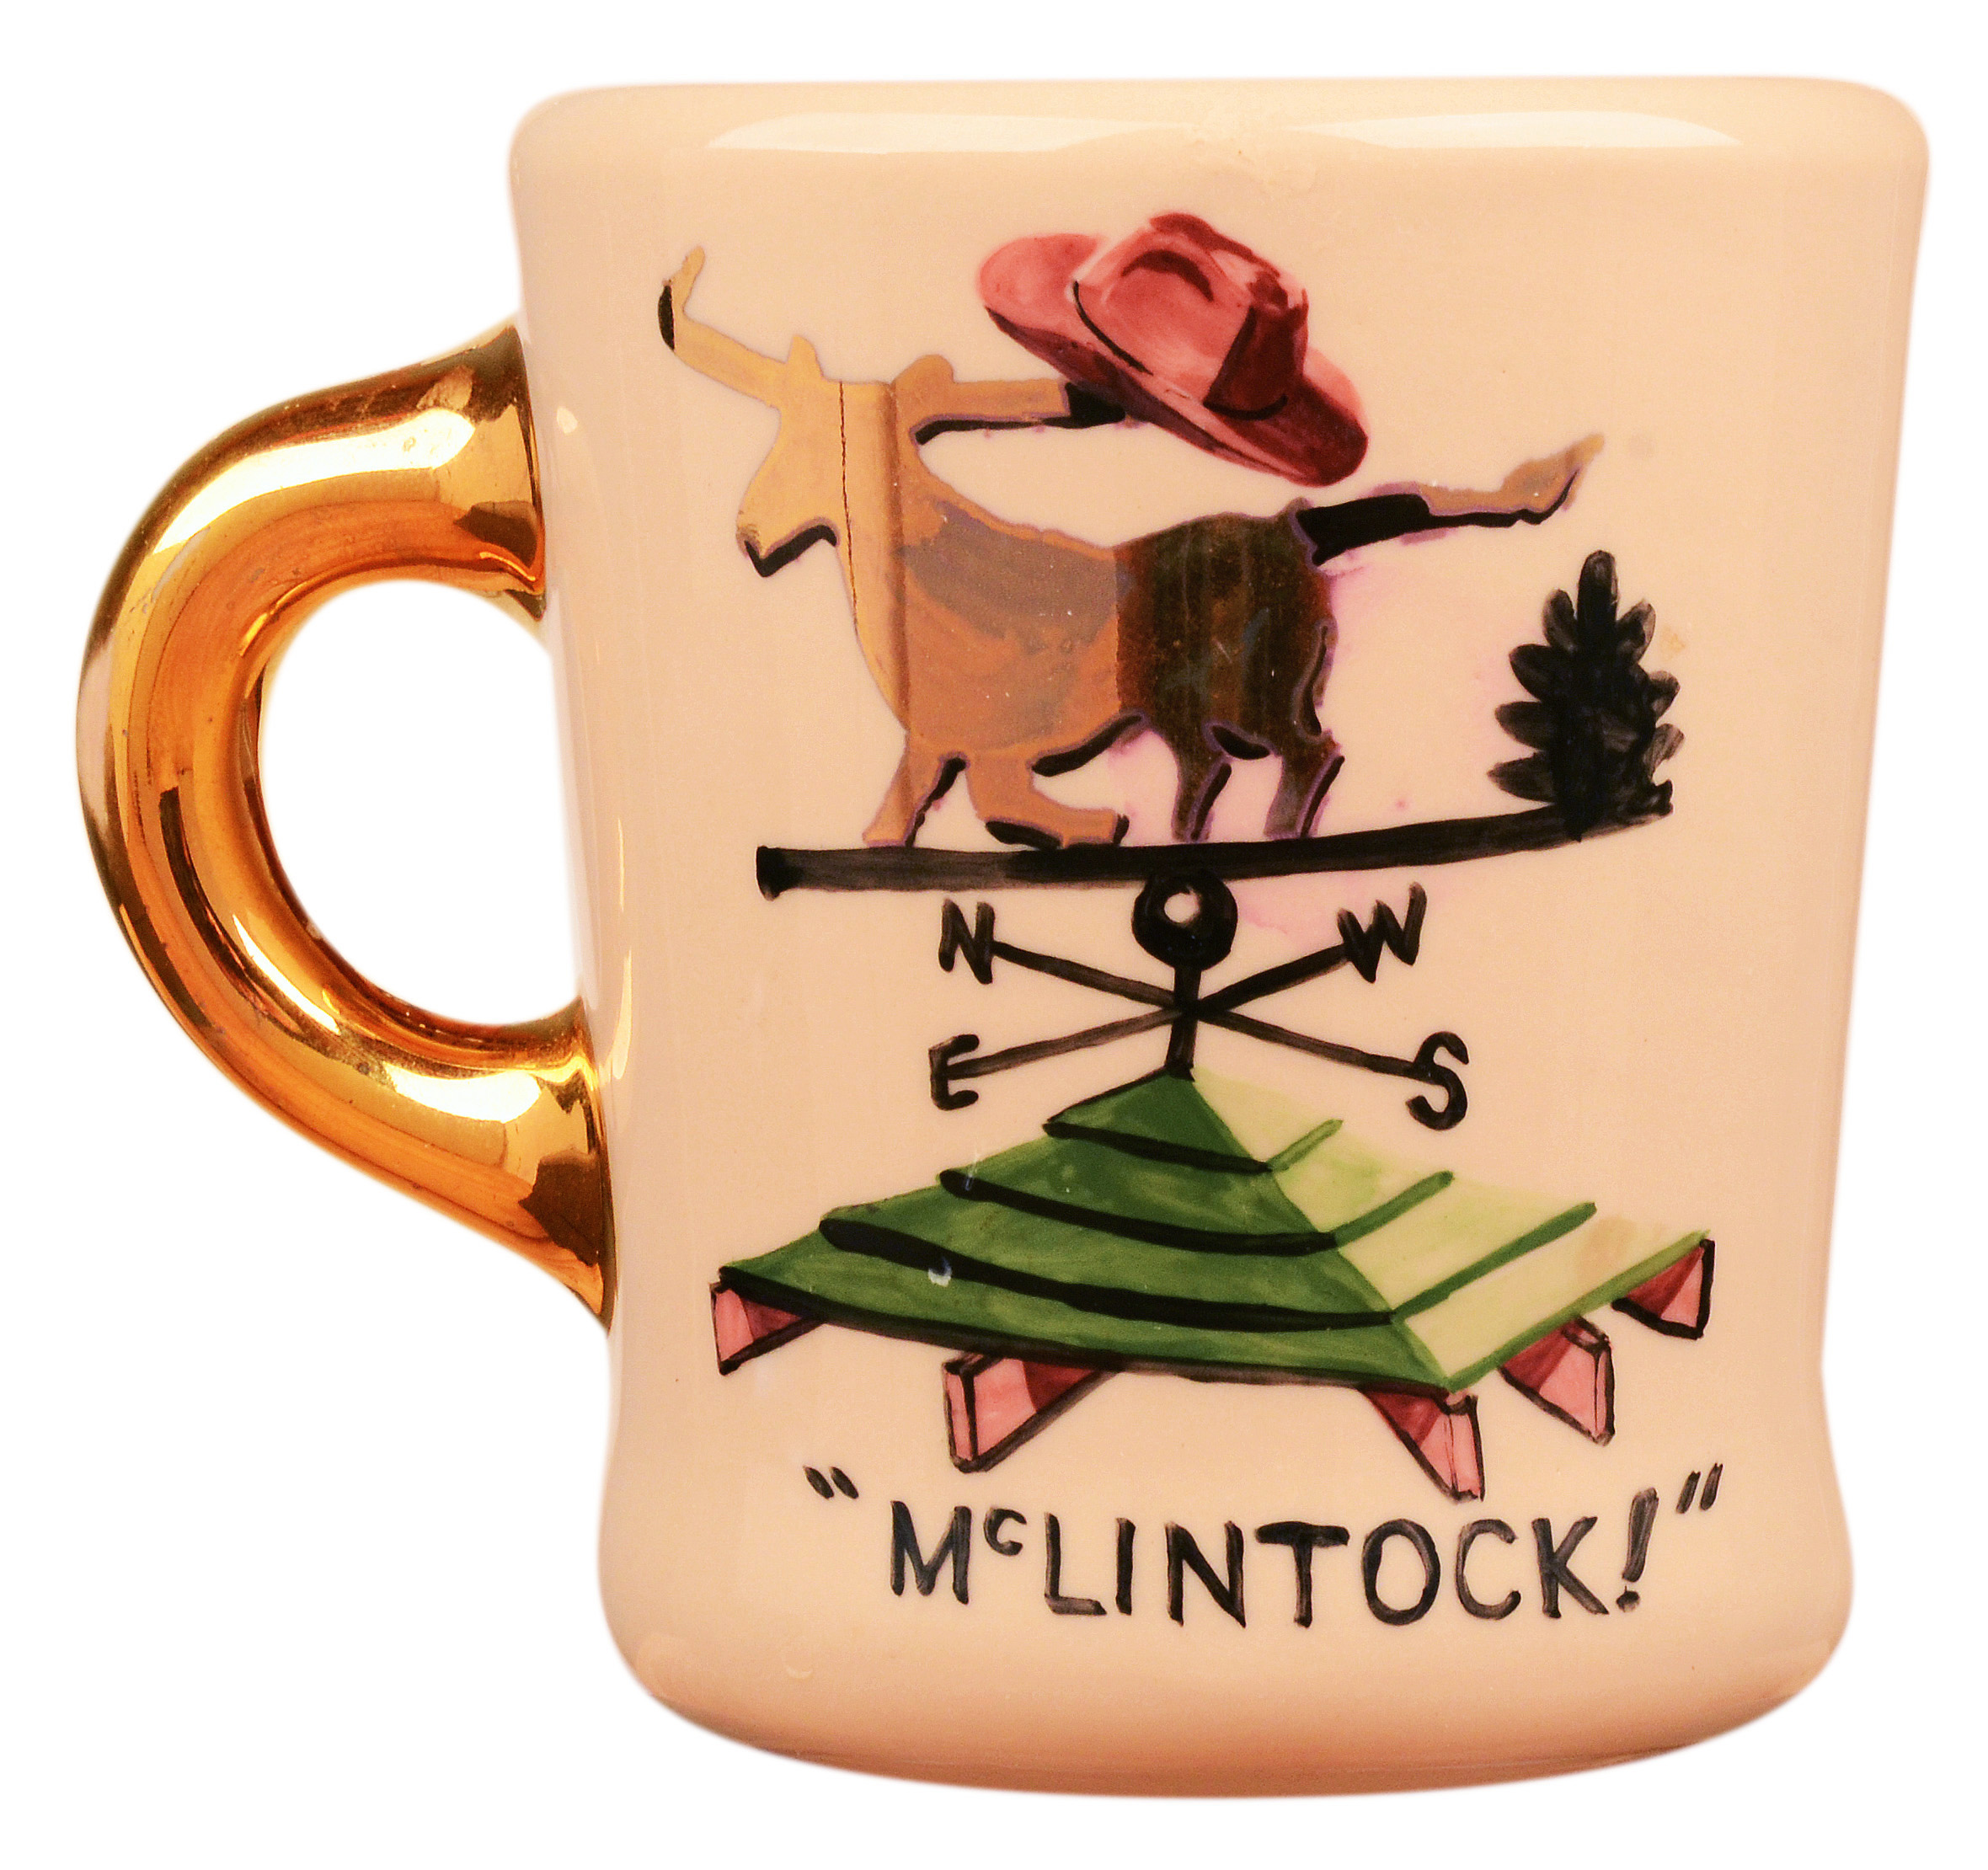 John Wayne mug for the 1963 movie McLintock, front.